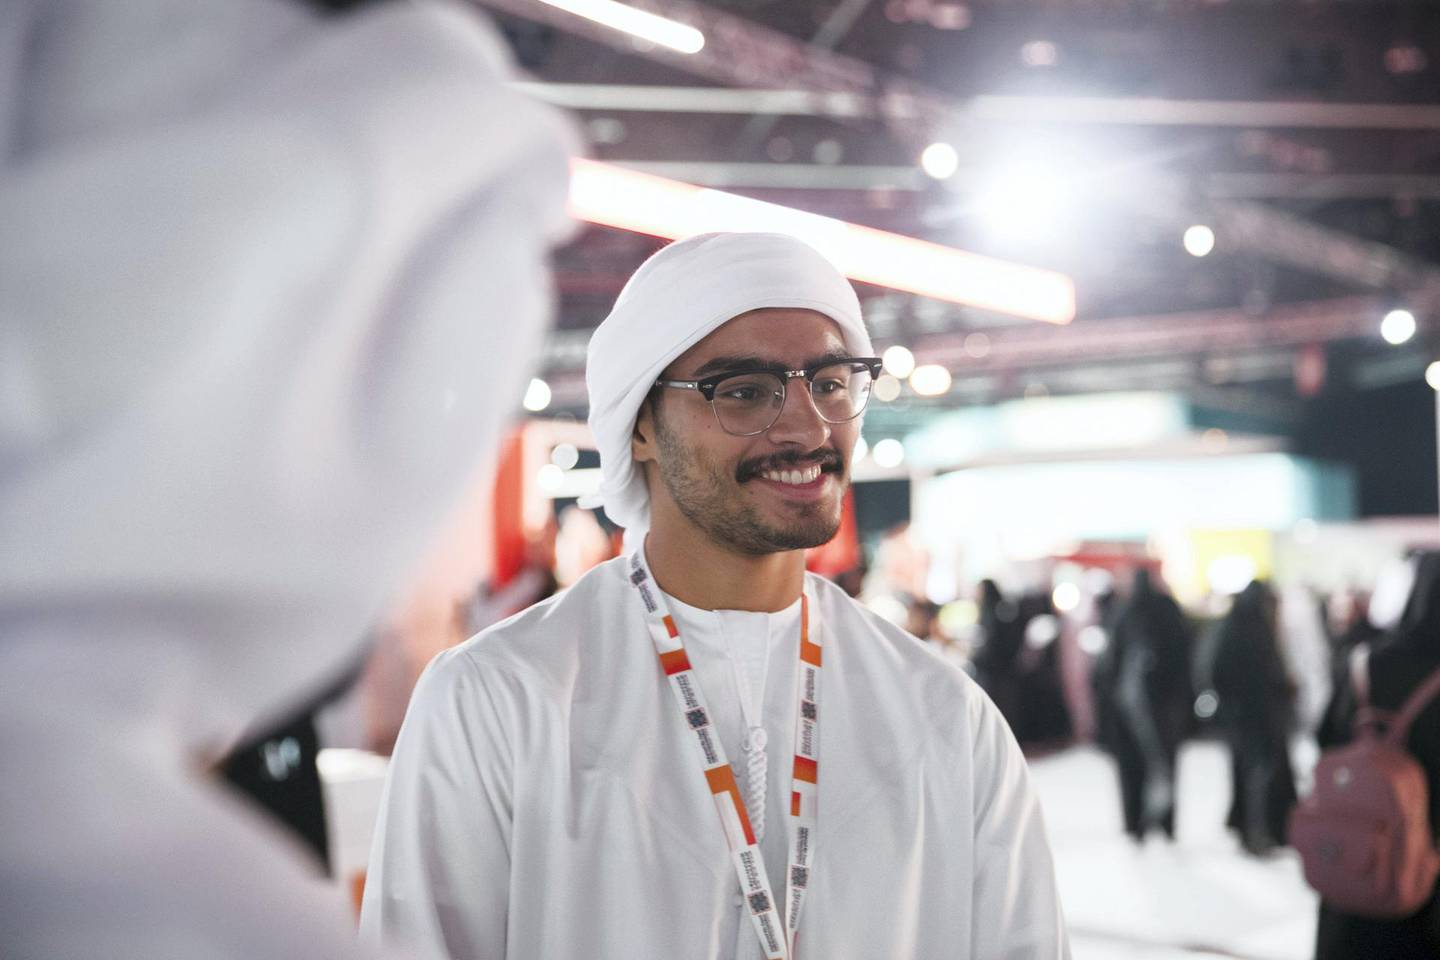 ABU DHABI, UNITED ARAB EMIRATES - OCTOBER 08, 2018. Abdulaziz Anwar Al Raeesi, 19, at Mohammed Bin Zayed Council for Future Generations sessions, held at ADNEC.(Photo by Reem Mohammed/The National)Reporter: SHIREENA AL NUWAIS + ANAM RIZVISection:  NA